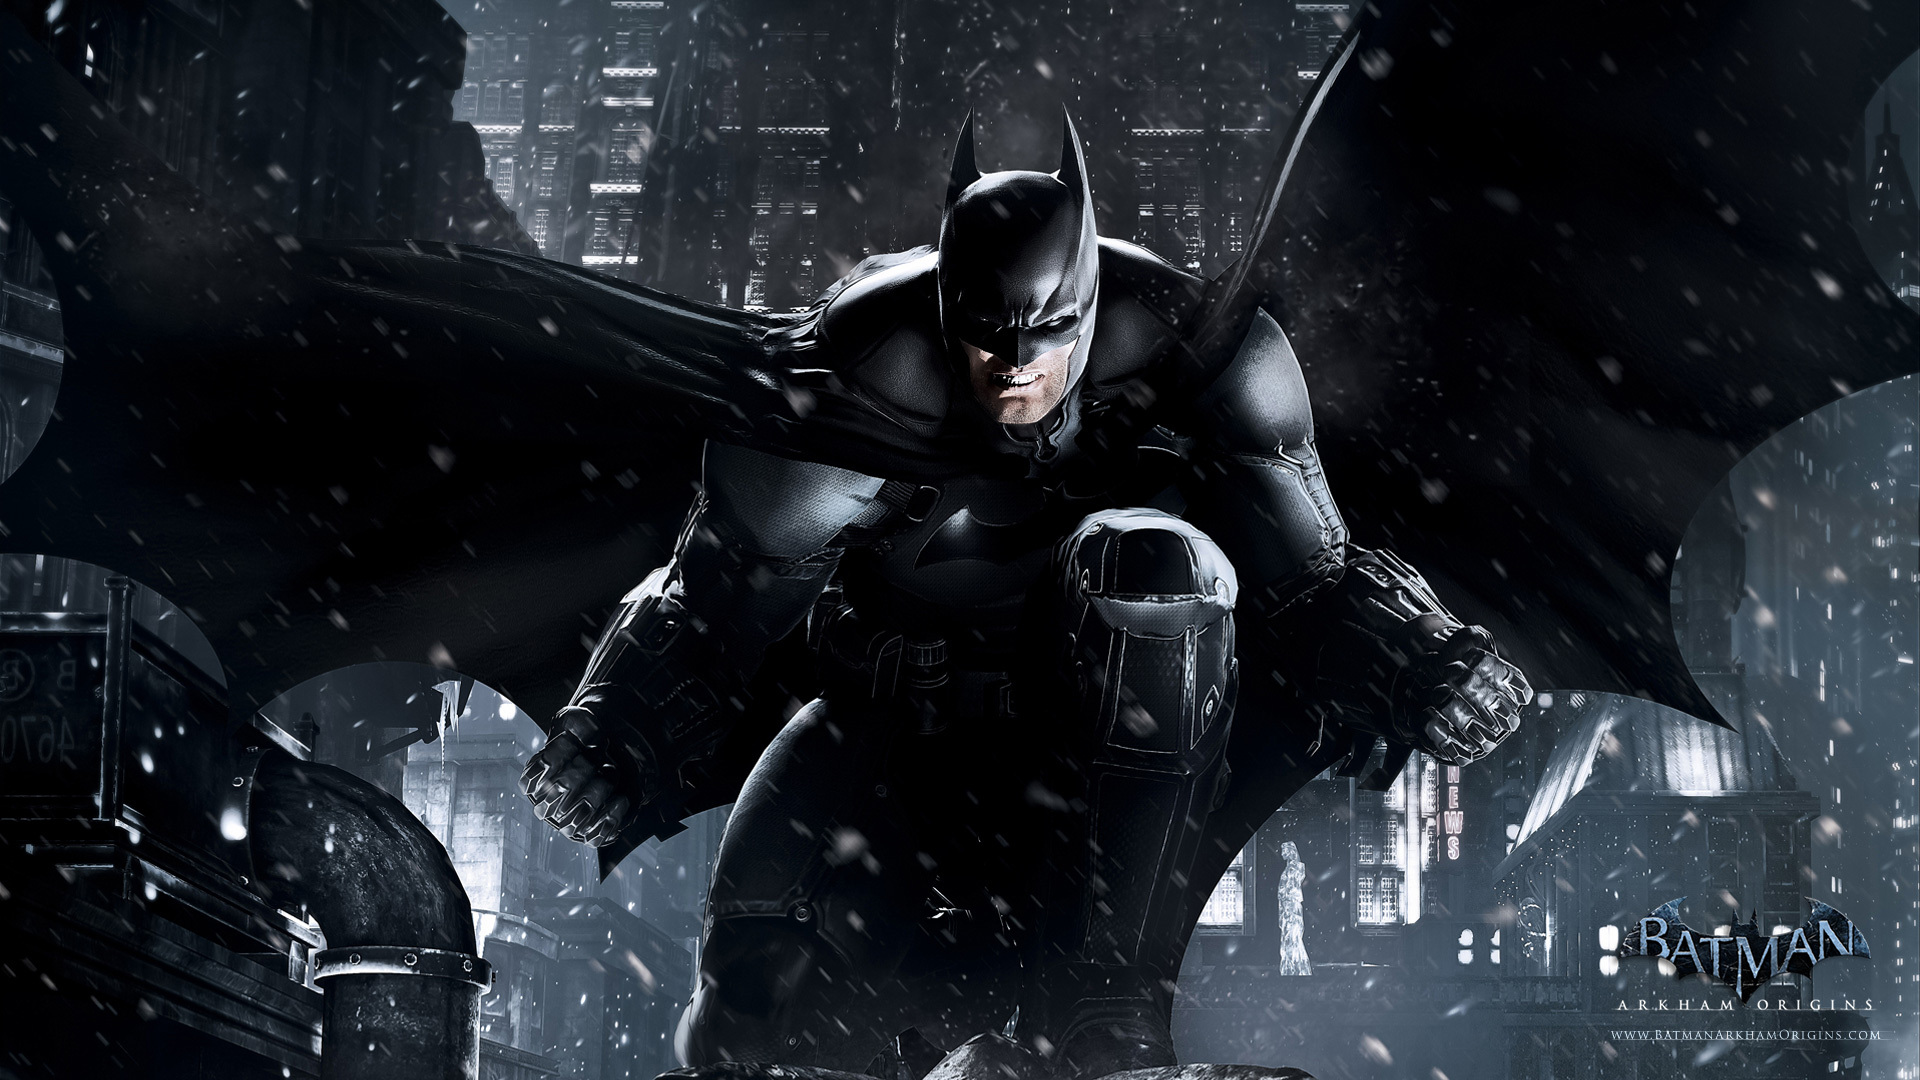 2013 Batman Arkham Origins Wallpapers HD Wallpapers 1920x1080